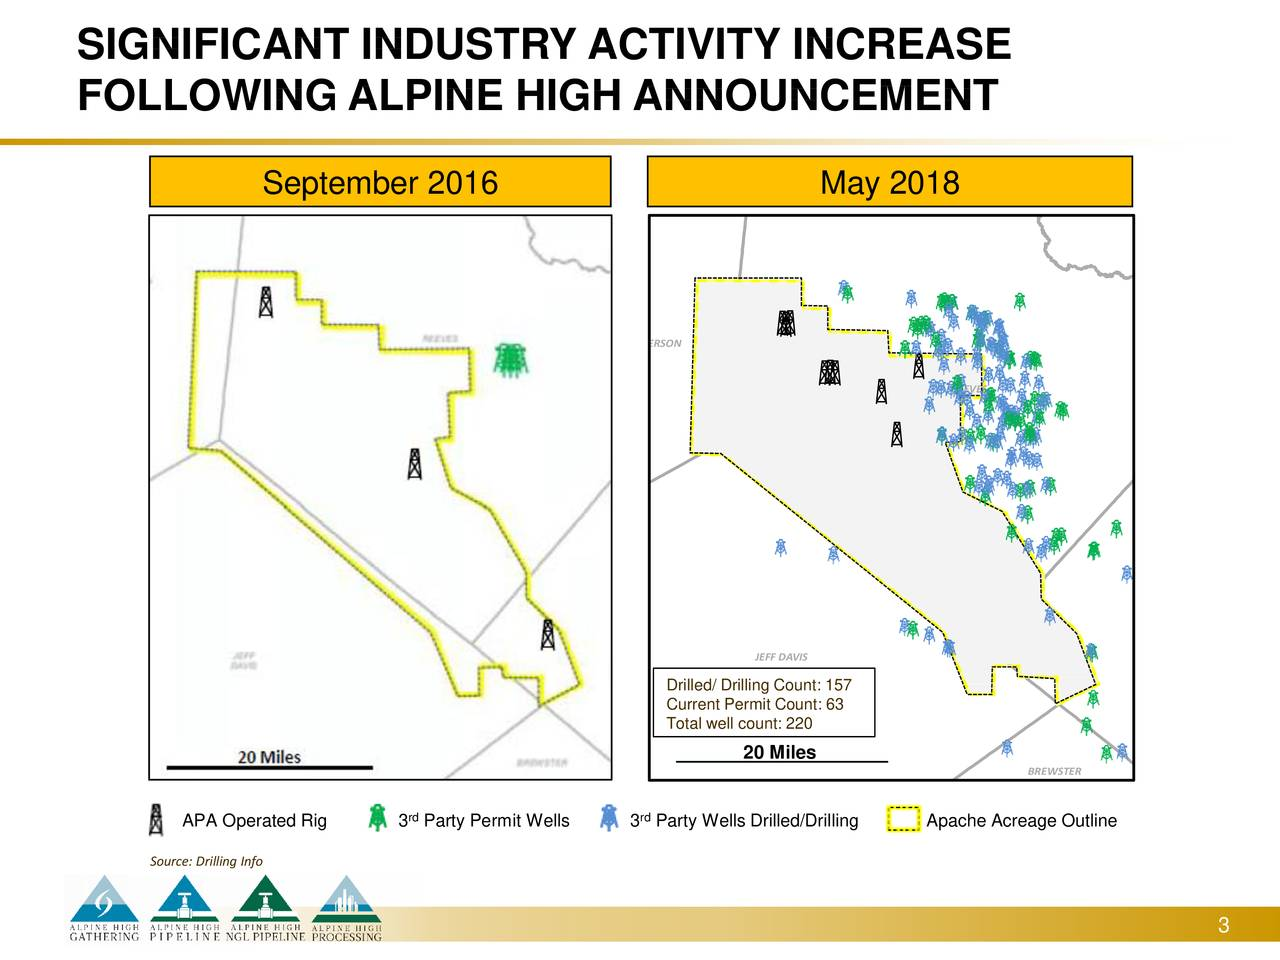 FOLLOWING ALPINE HIGH ANNOUNCEMENT September 2016 May 2018 WARD CULBERSON REEVES PECOS JEFF DAVIS Drilled/ Drilling Count: 157 Current Permit Count: 63 Total well count: 220 Miles 0 5 10 20 20 Miles BREWSTER PRESIDIO APA Operated Rig 3 Party Permit Wells 3 Party Wells Drilled/Drilling Apache Acreage Outline Source: Drilling Info 3